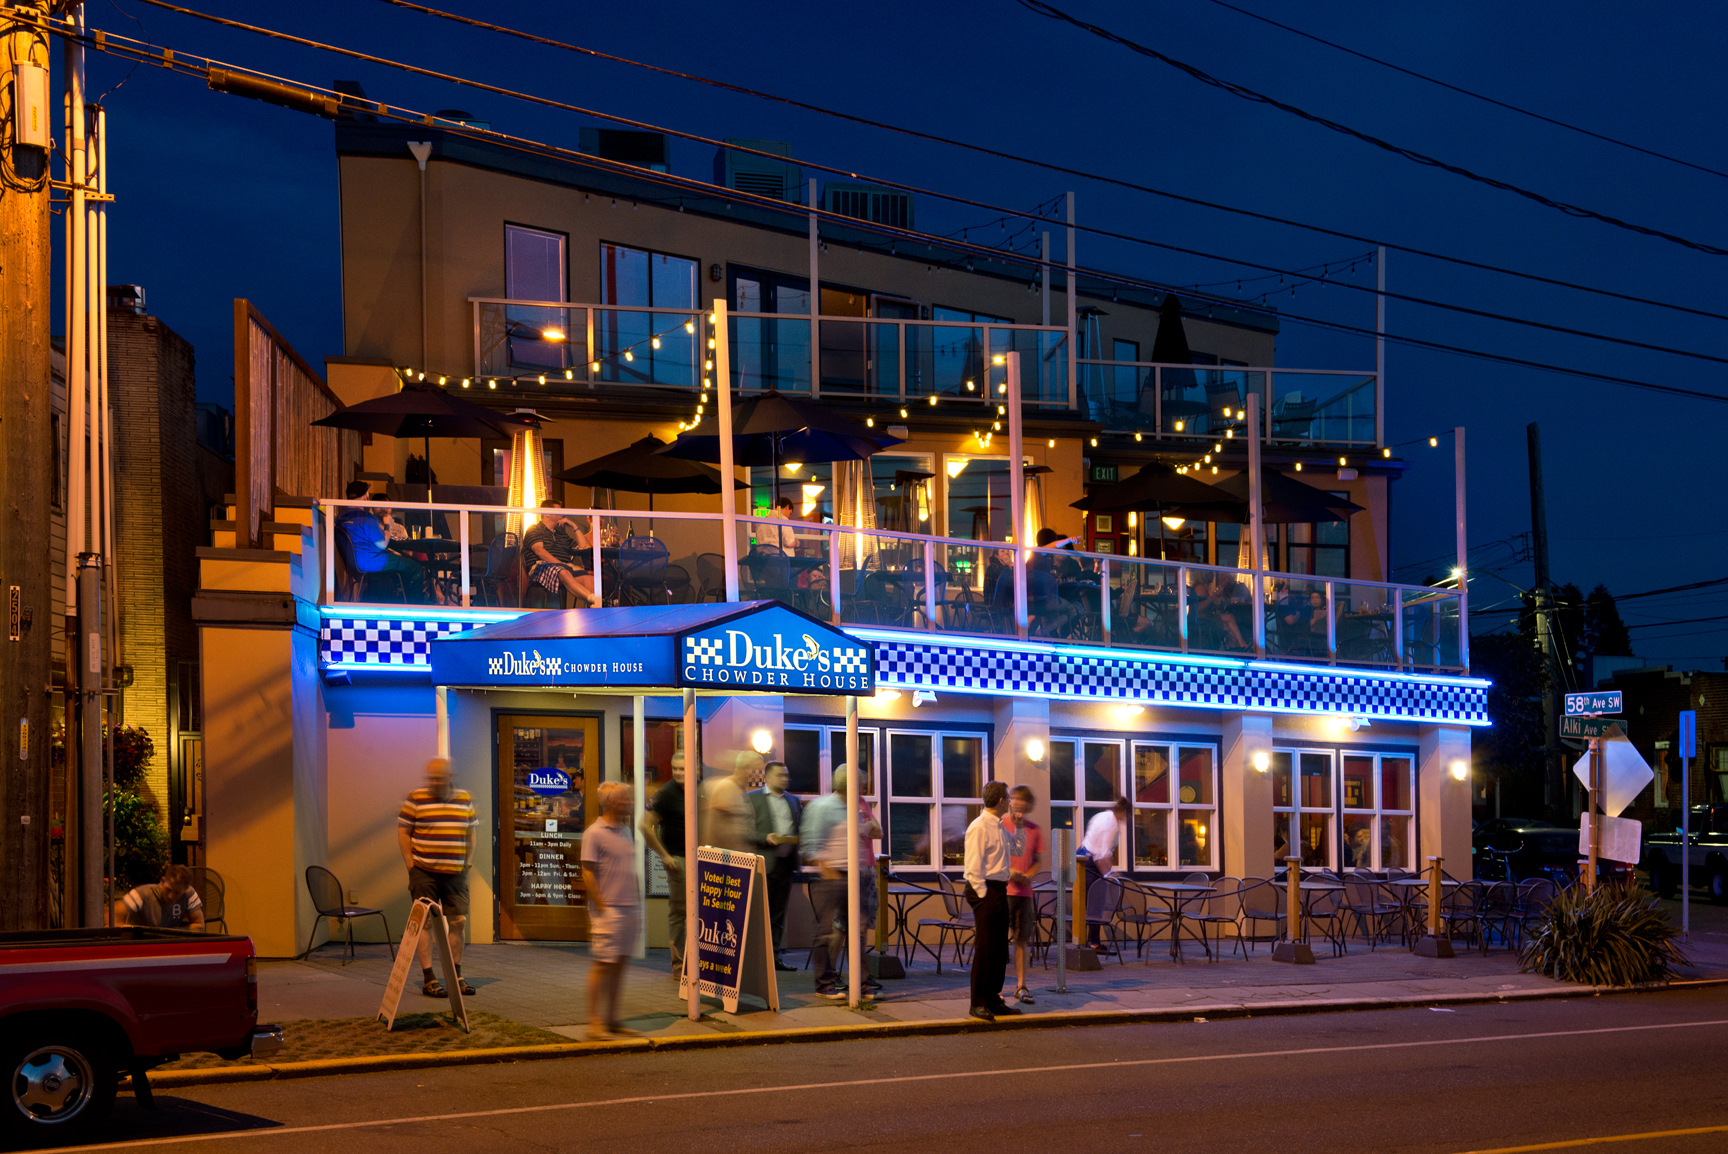 Picture of Dukes Chowder House on Alki